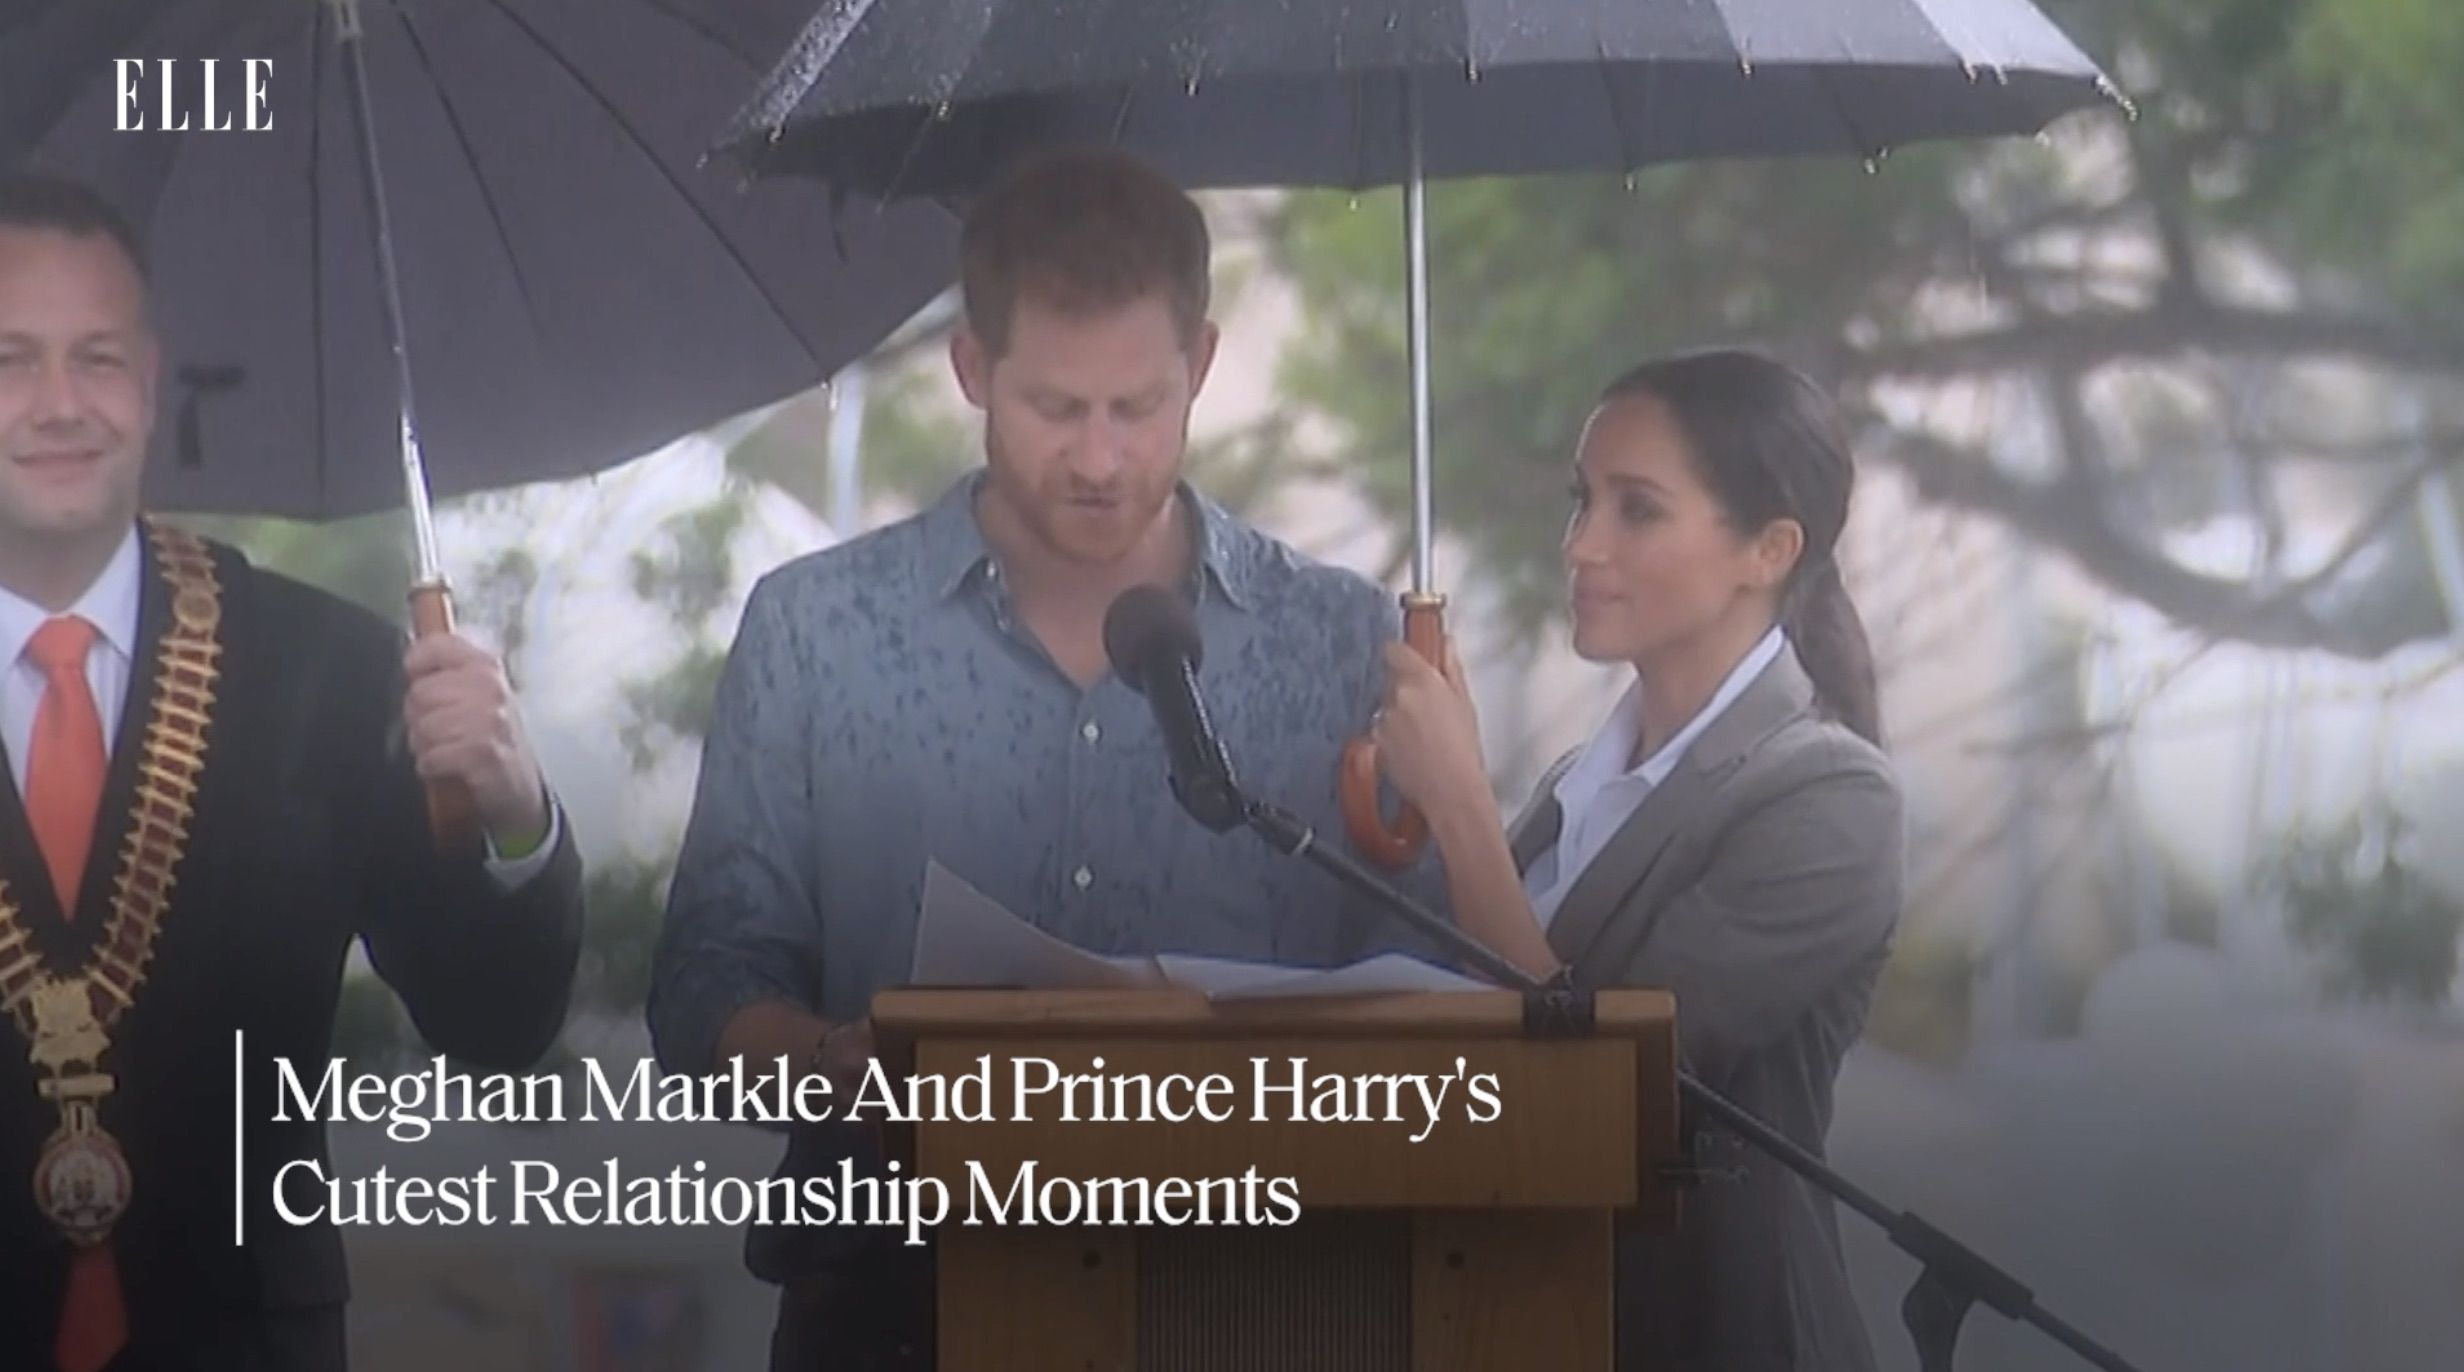 Prince Harry Apparently Wooed Meghan Markle With an Emoji